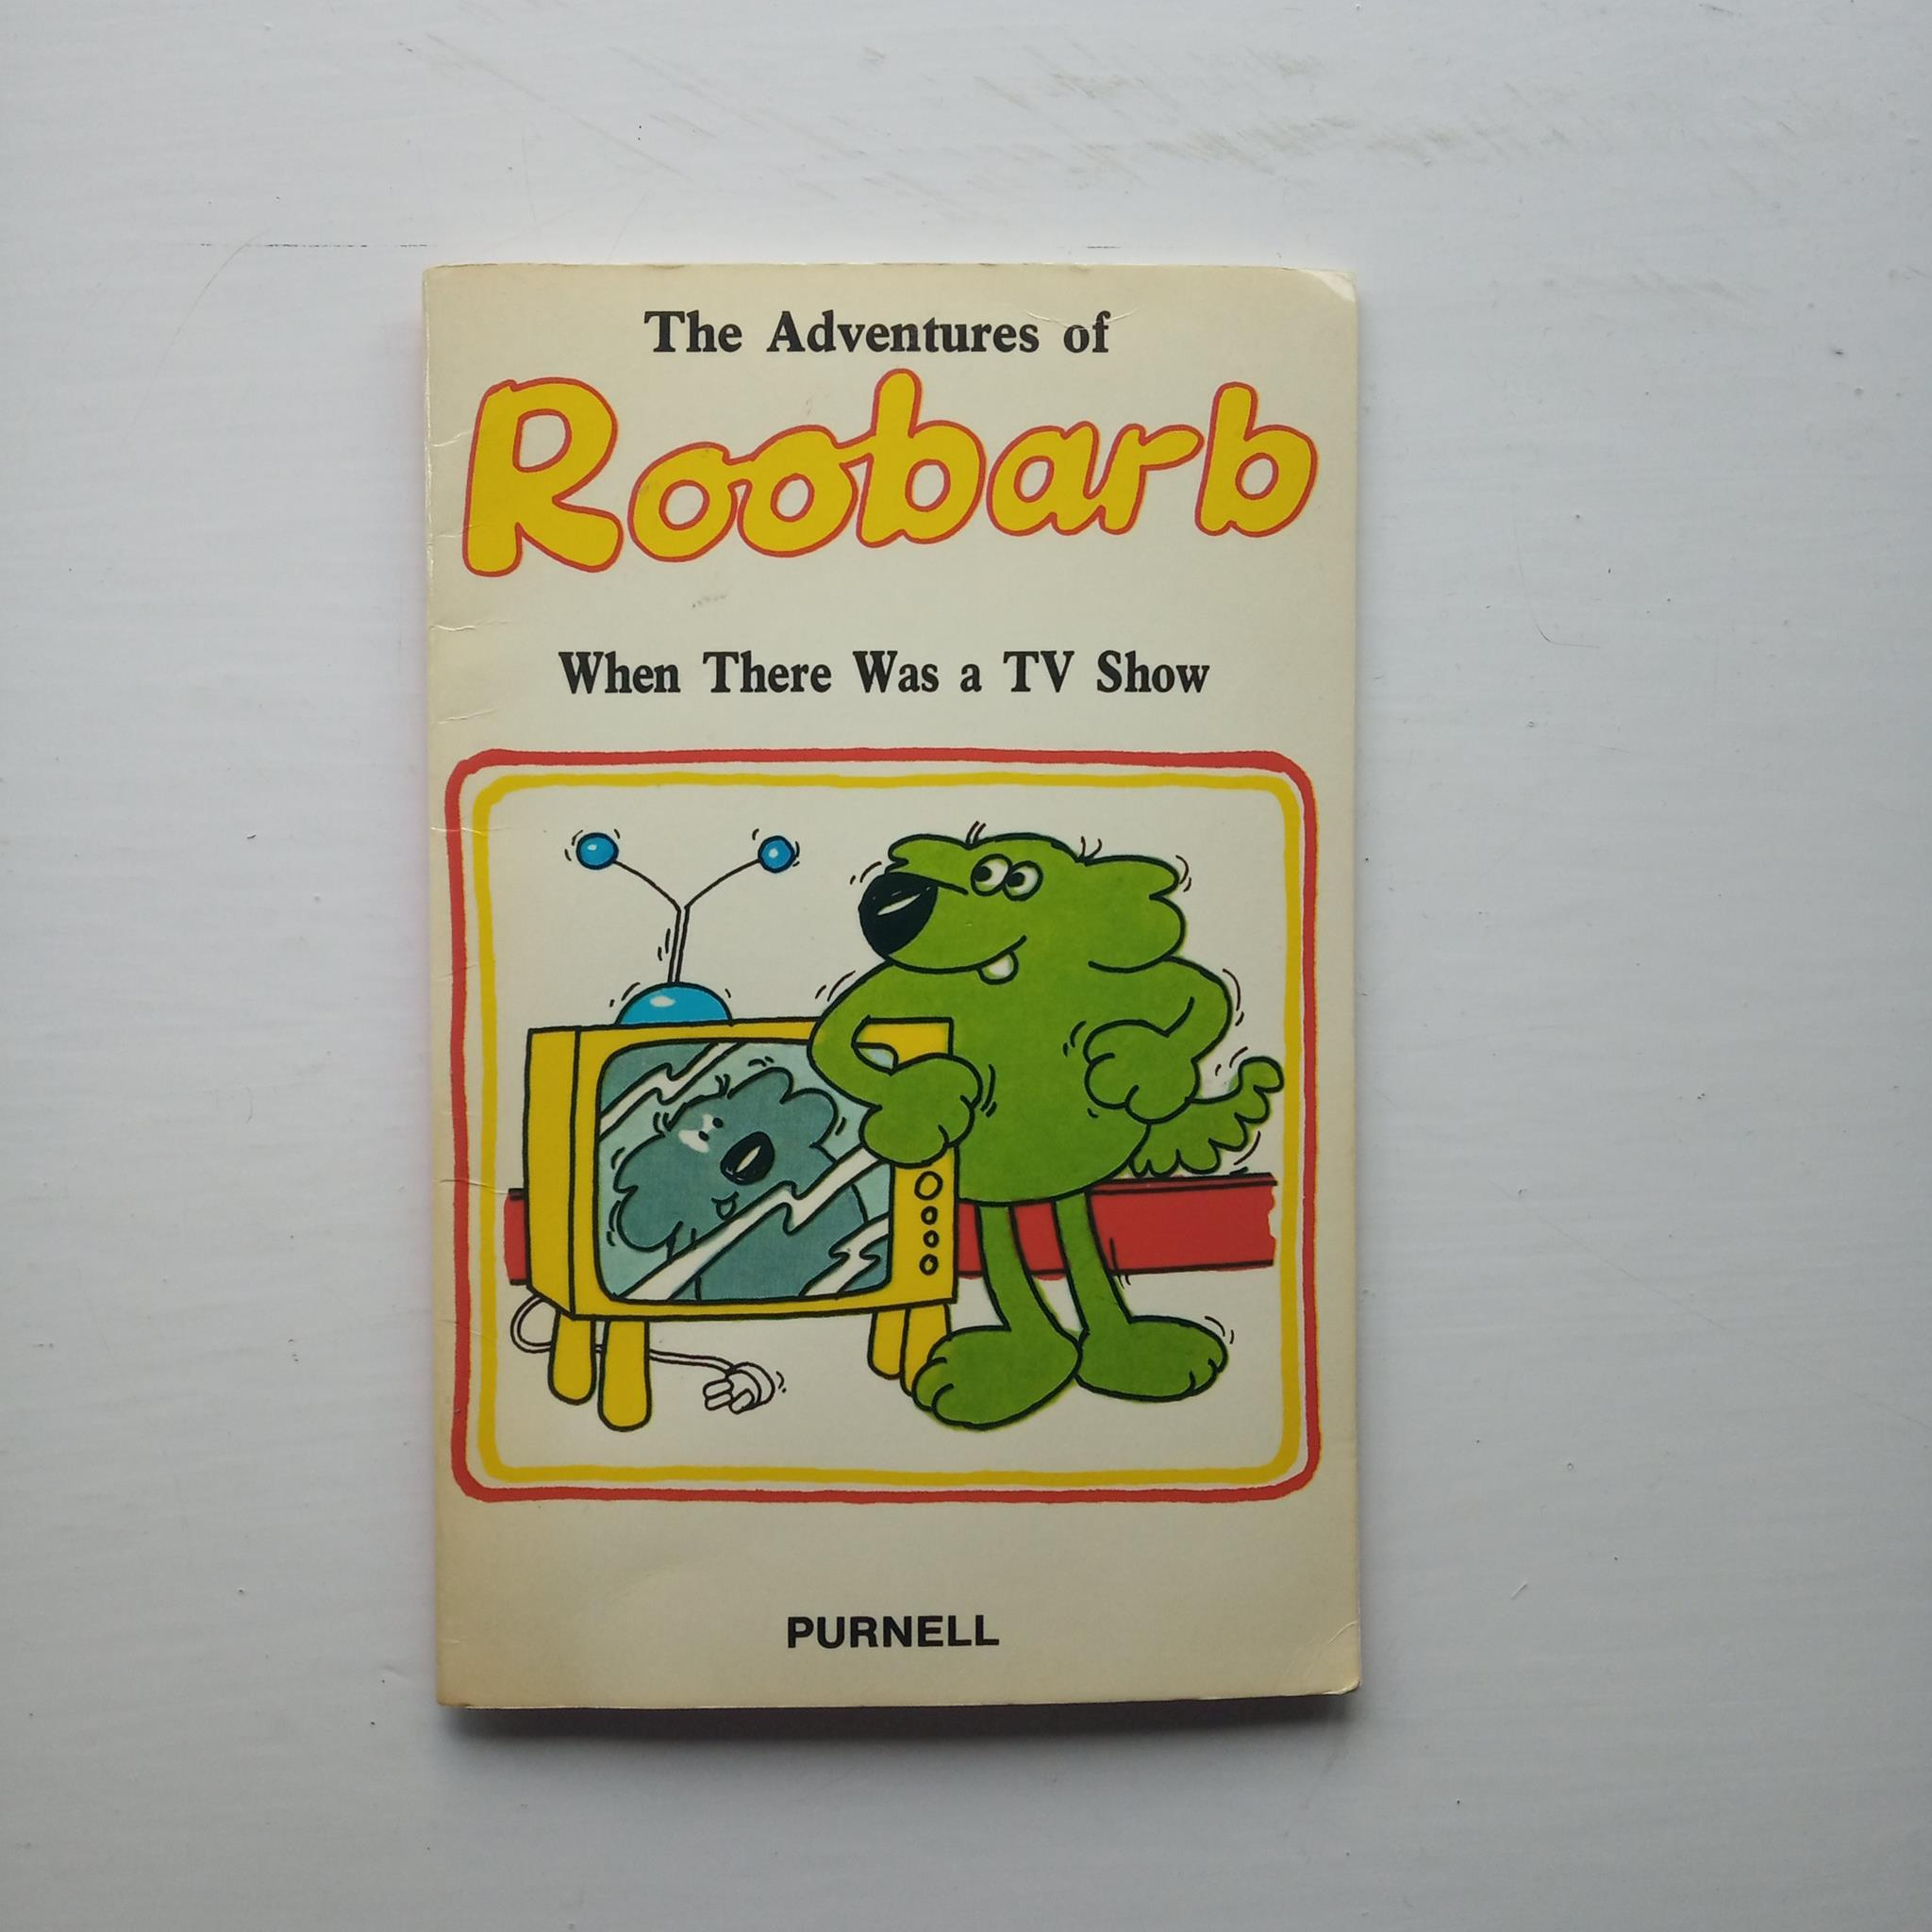 The Adventures of Roobarb: When There Was a TV Show by Grange Calveley